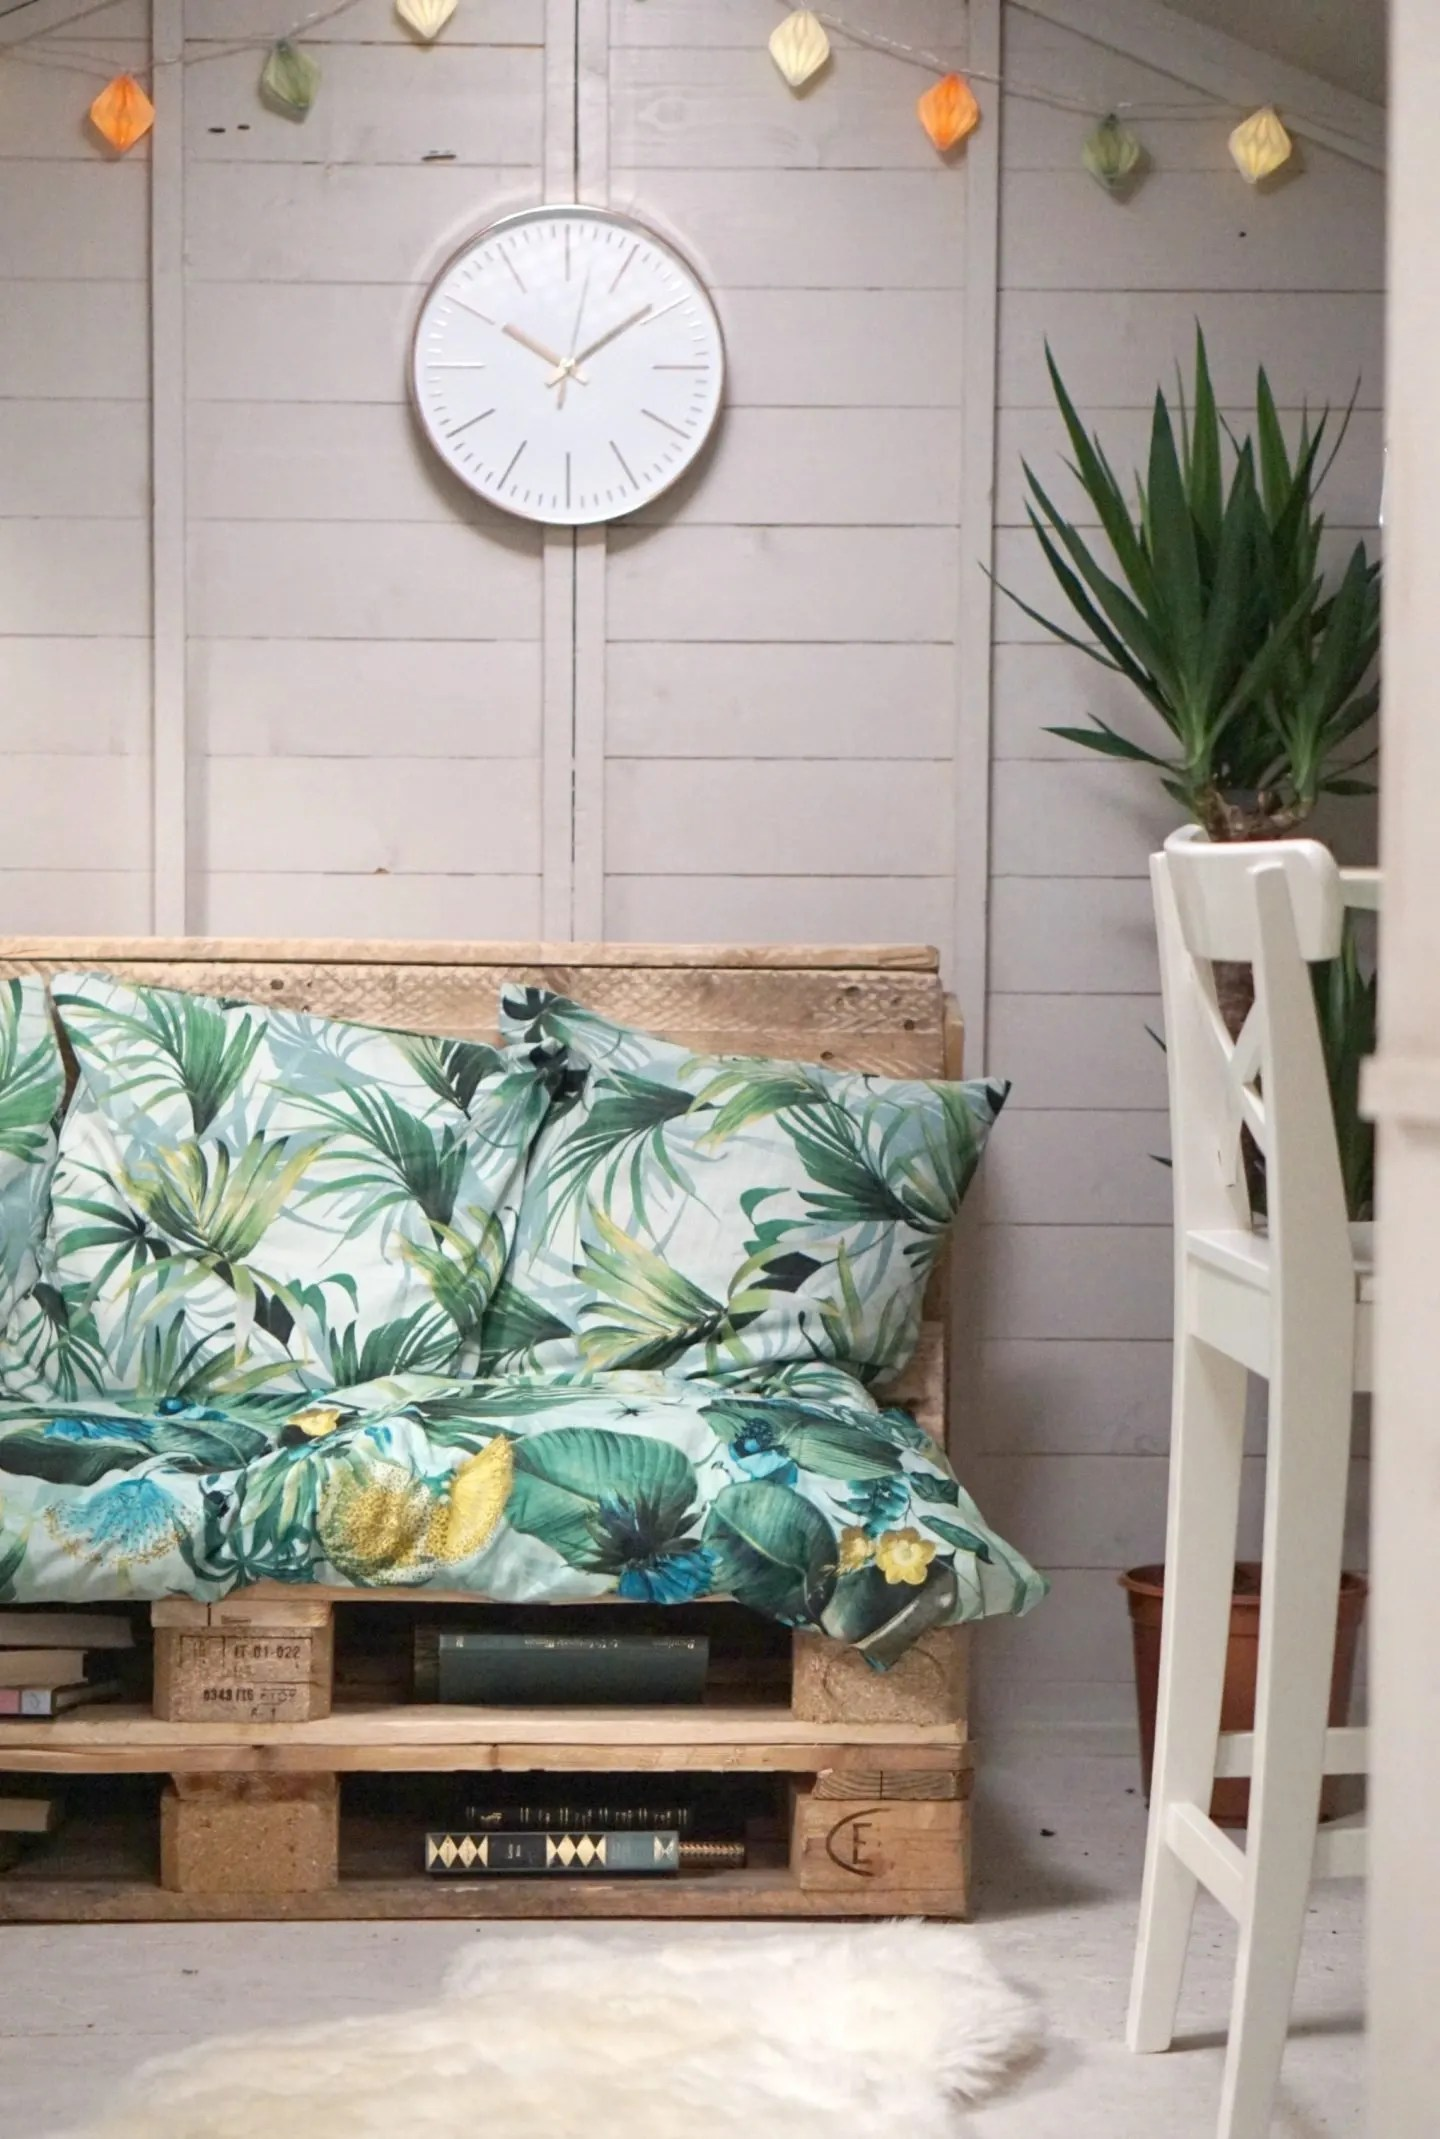 Up cycling pallet's into a garden sofa and decorating an outdoor shed extraordinarychaos.com